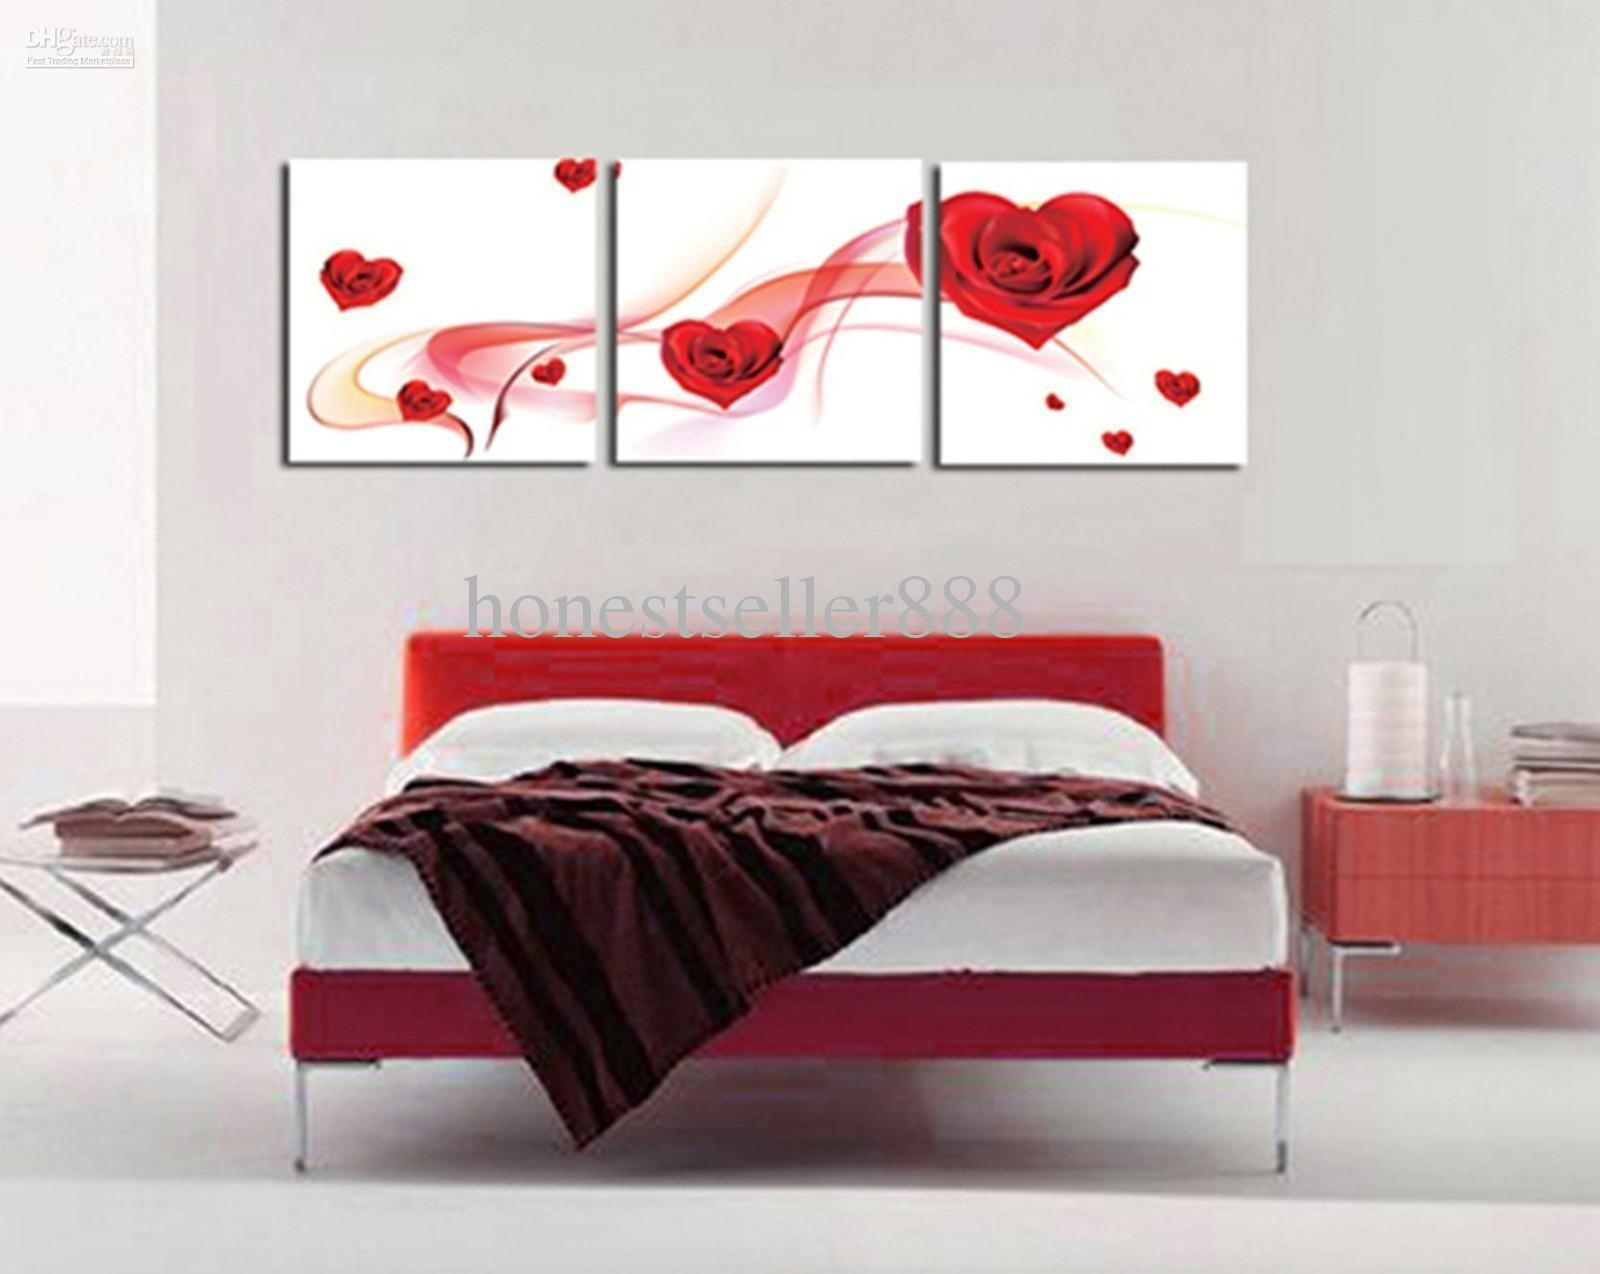 Bedroom : Bedroom Colors Where To Buy Wall Art Large Wall Art For For Most Current Inexpensive Abstract Wall Art (View 13 of 20)